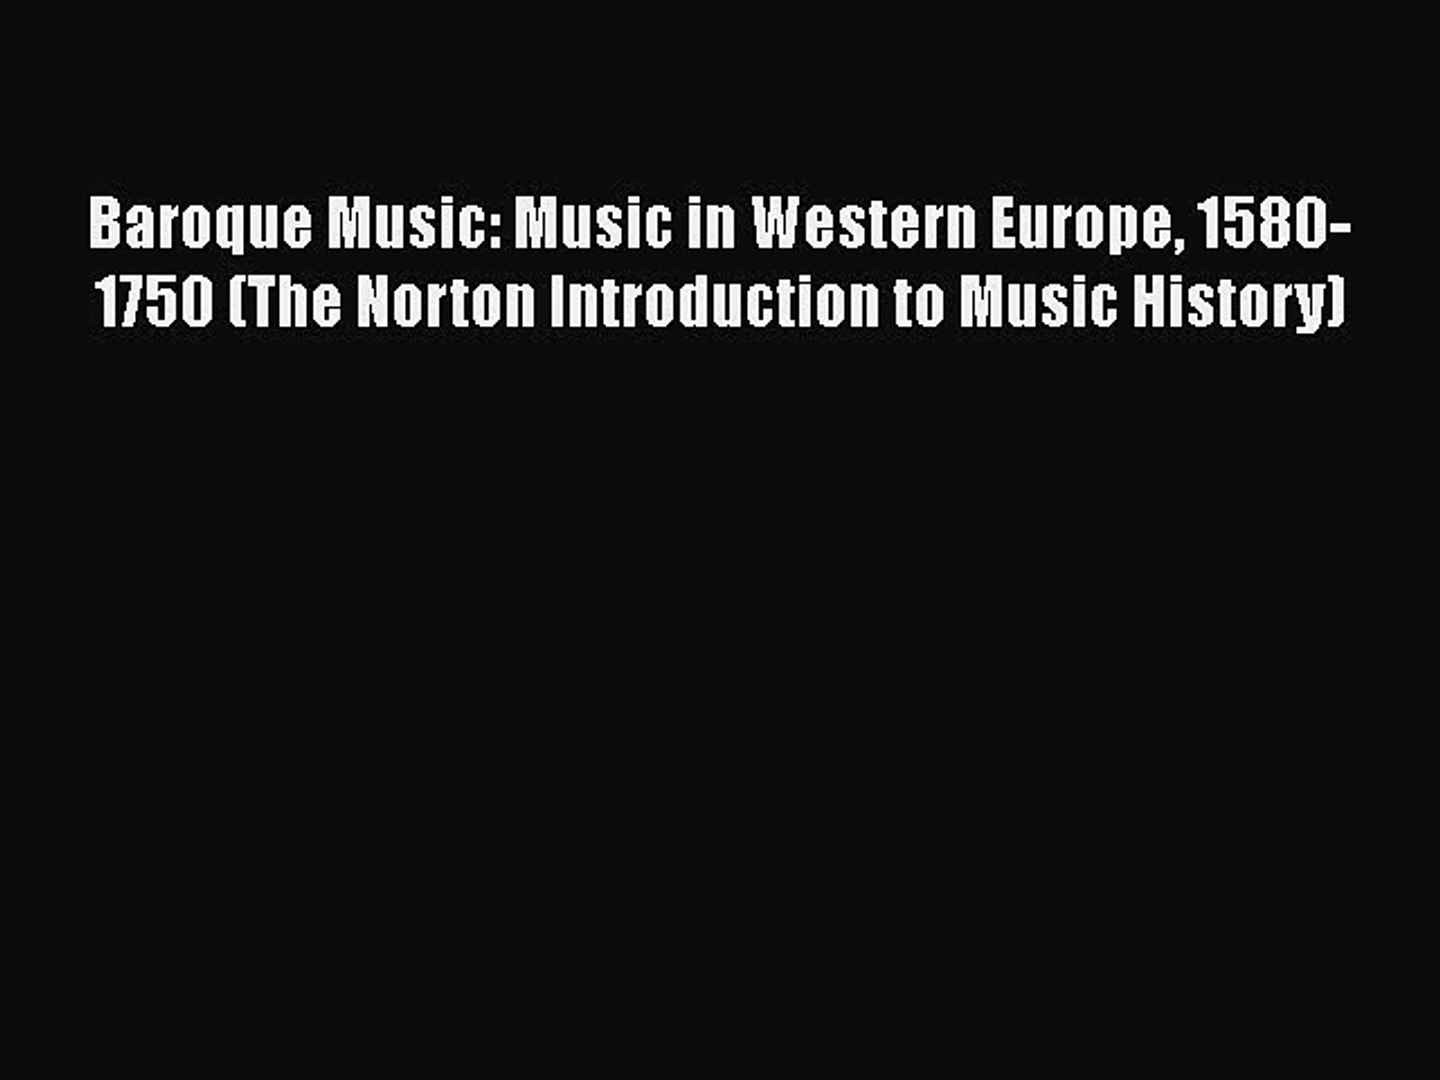 PDF Download Baroque Music: Music in Western Europe 1580-1750 (The Norton Introduction to Music